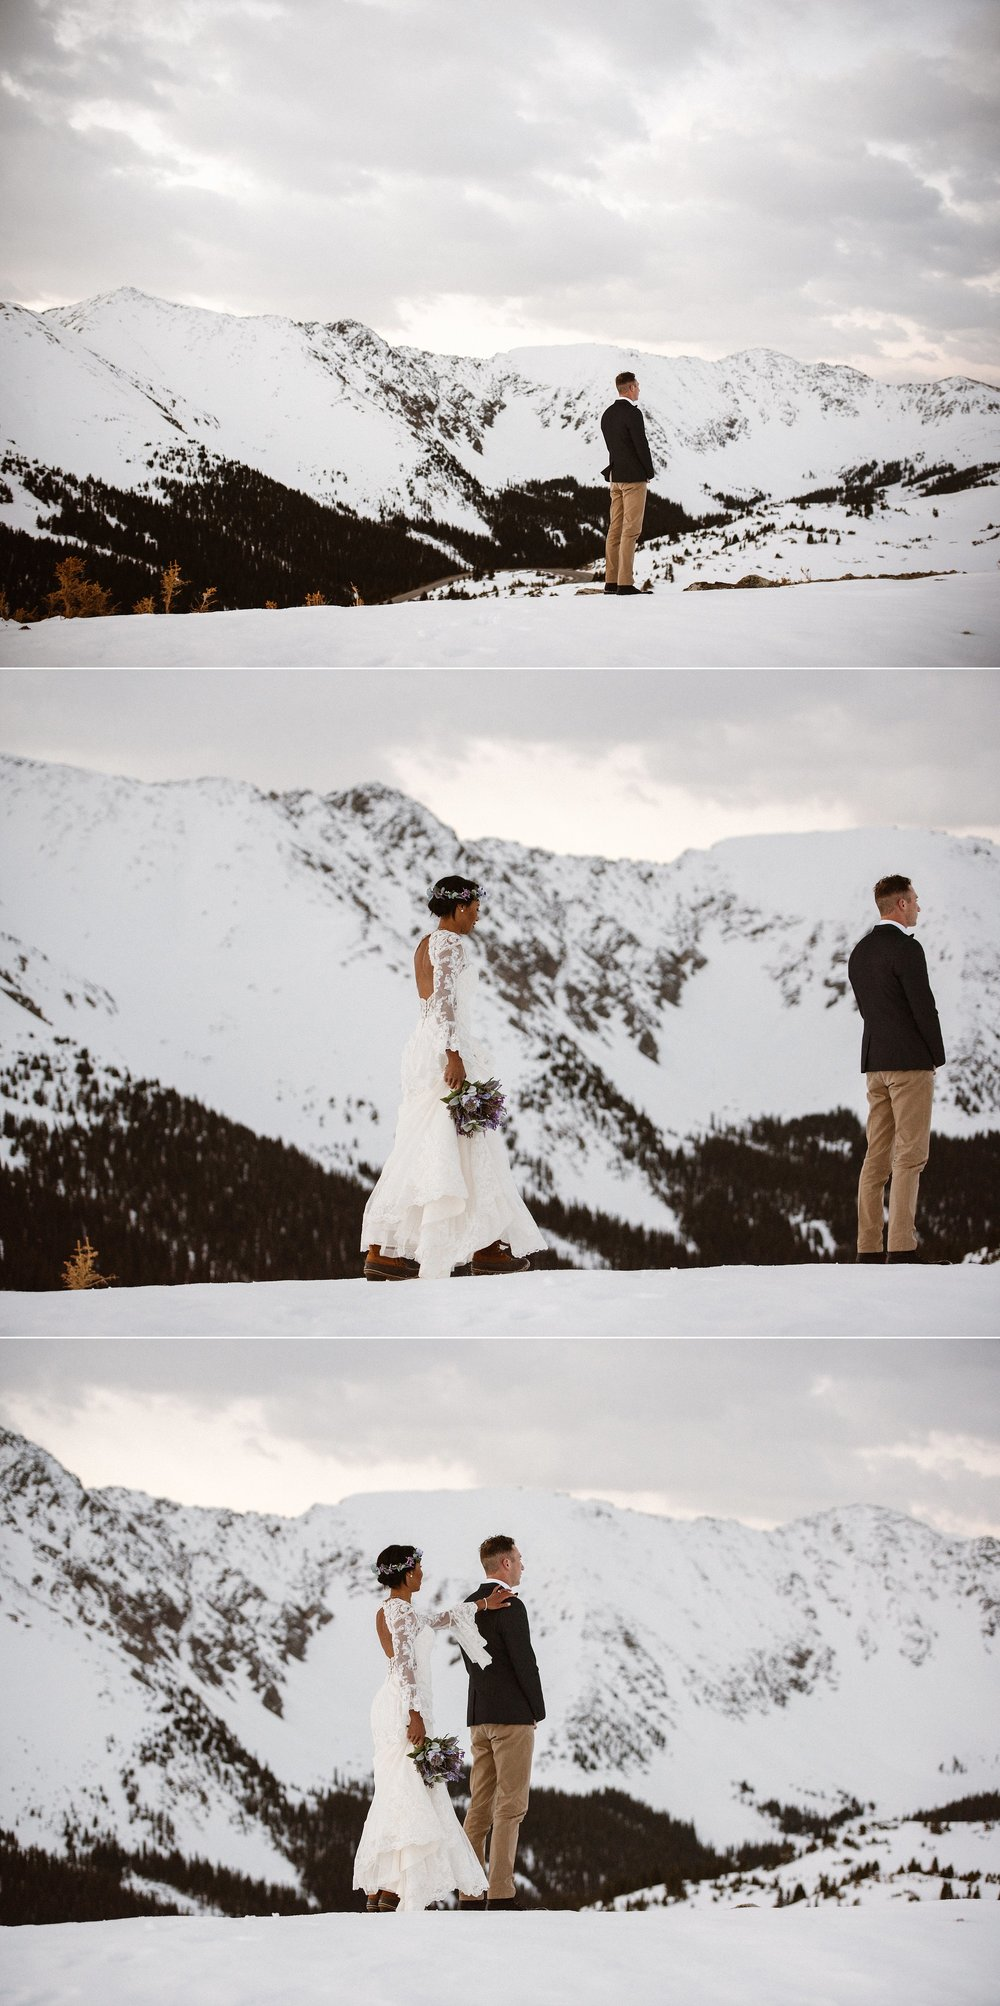 Jared waited patiently for his stunning winter bride to arrive. Their intimate Loveland Pass elopement photographed by traveling wedding photographer Maddie Mae.